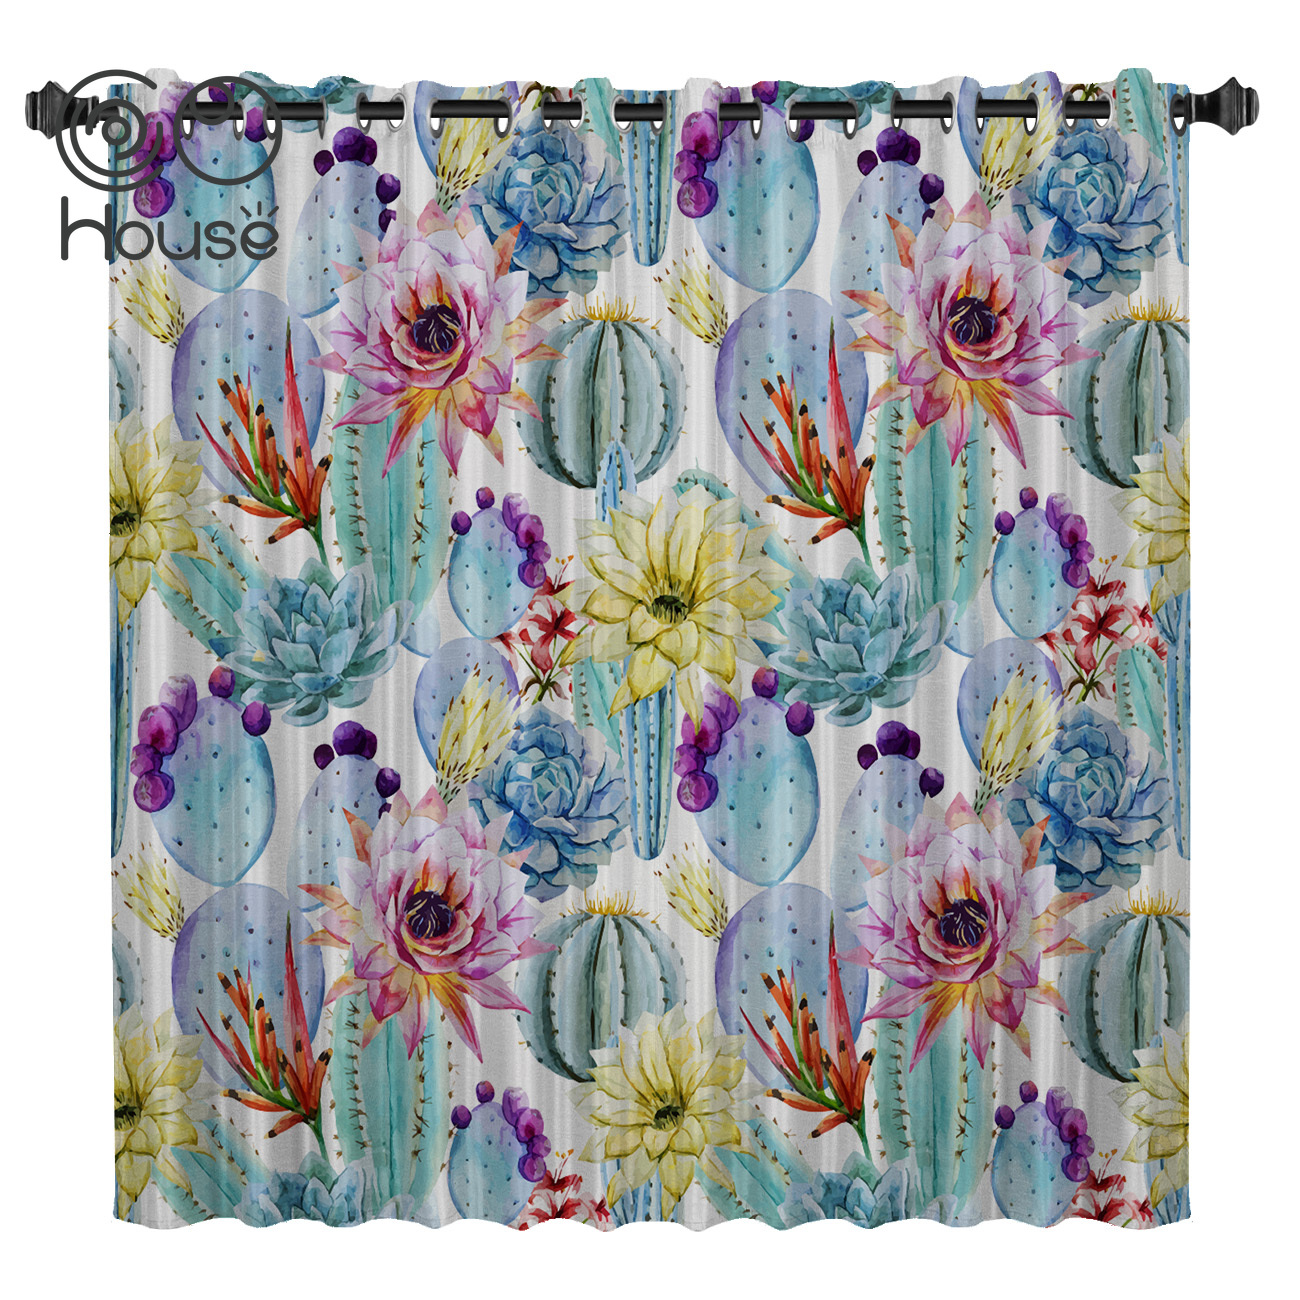 COCOHouse Plant Cactus Flower Room Curtains Large Window Living Room Curtain Rod Blackout Bathroom Outdoor Kitchen Drapes Decor